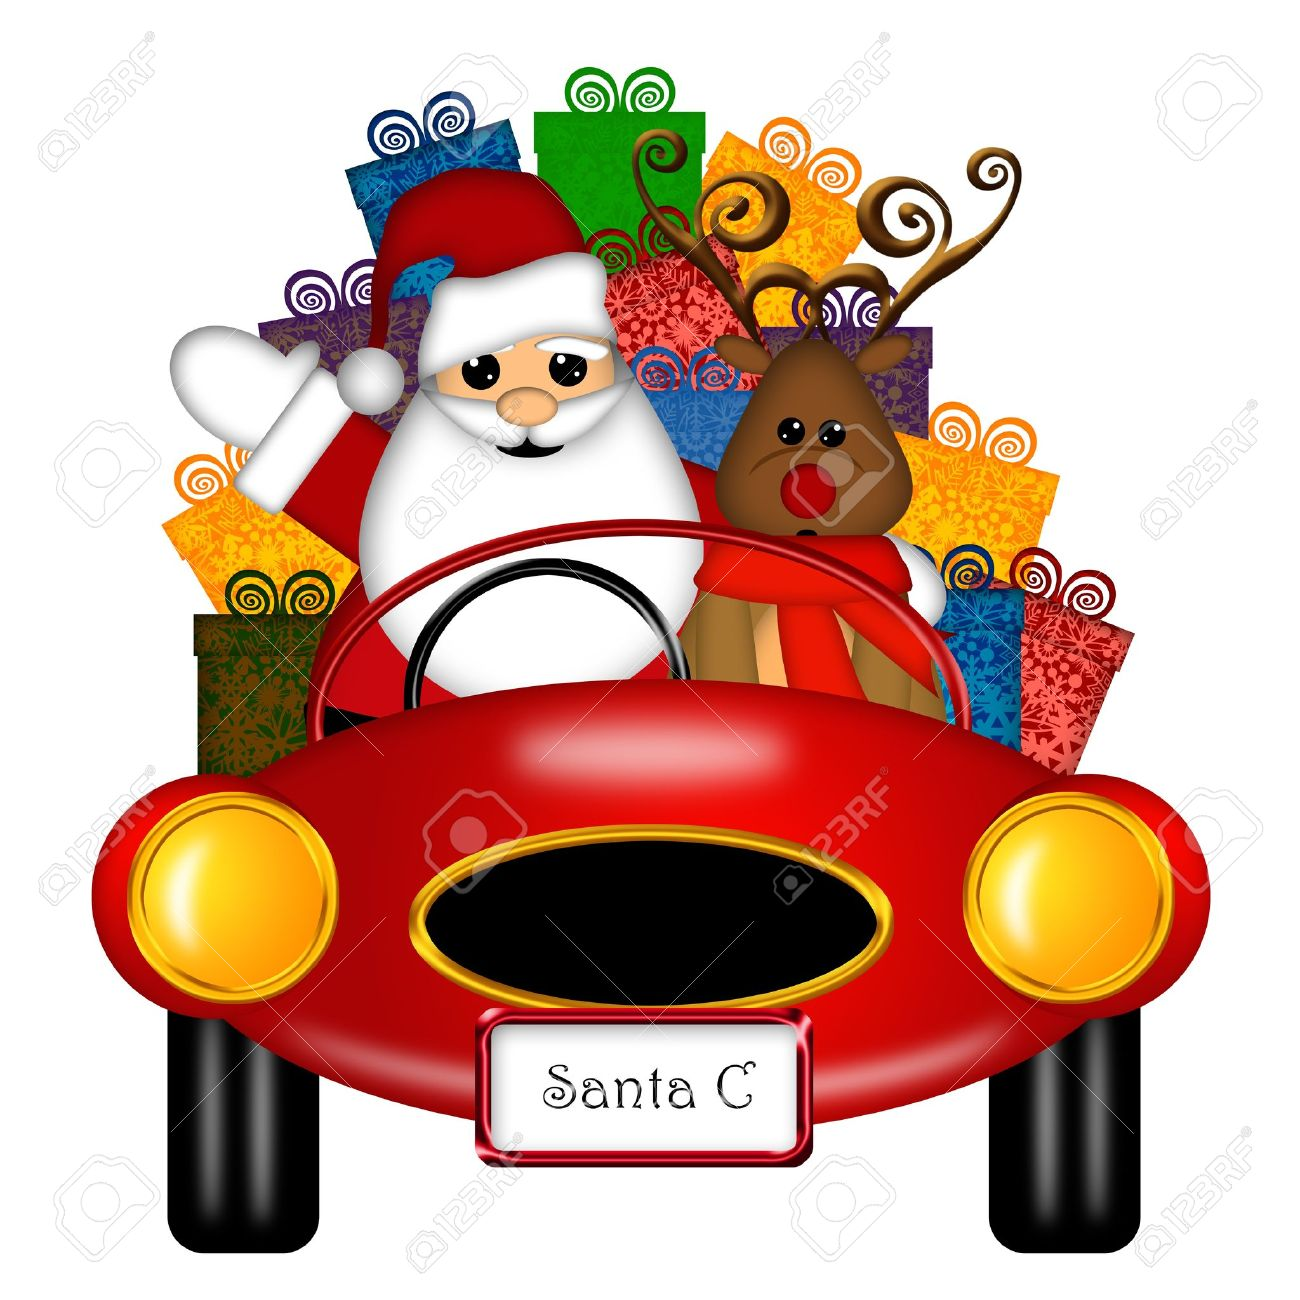 Santa Claus and Reindeer in Red Sports Car Delivering Presents Isolated on White Illustration Stock Photo - 11570766